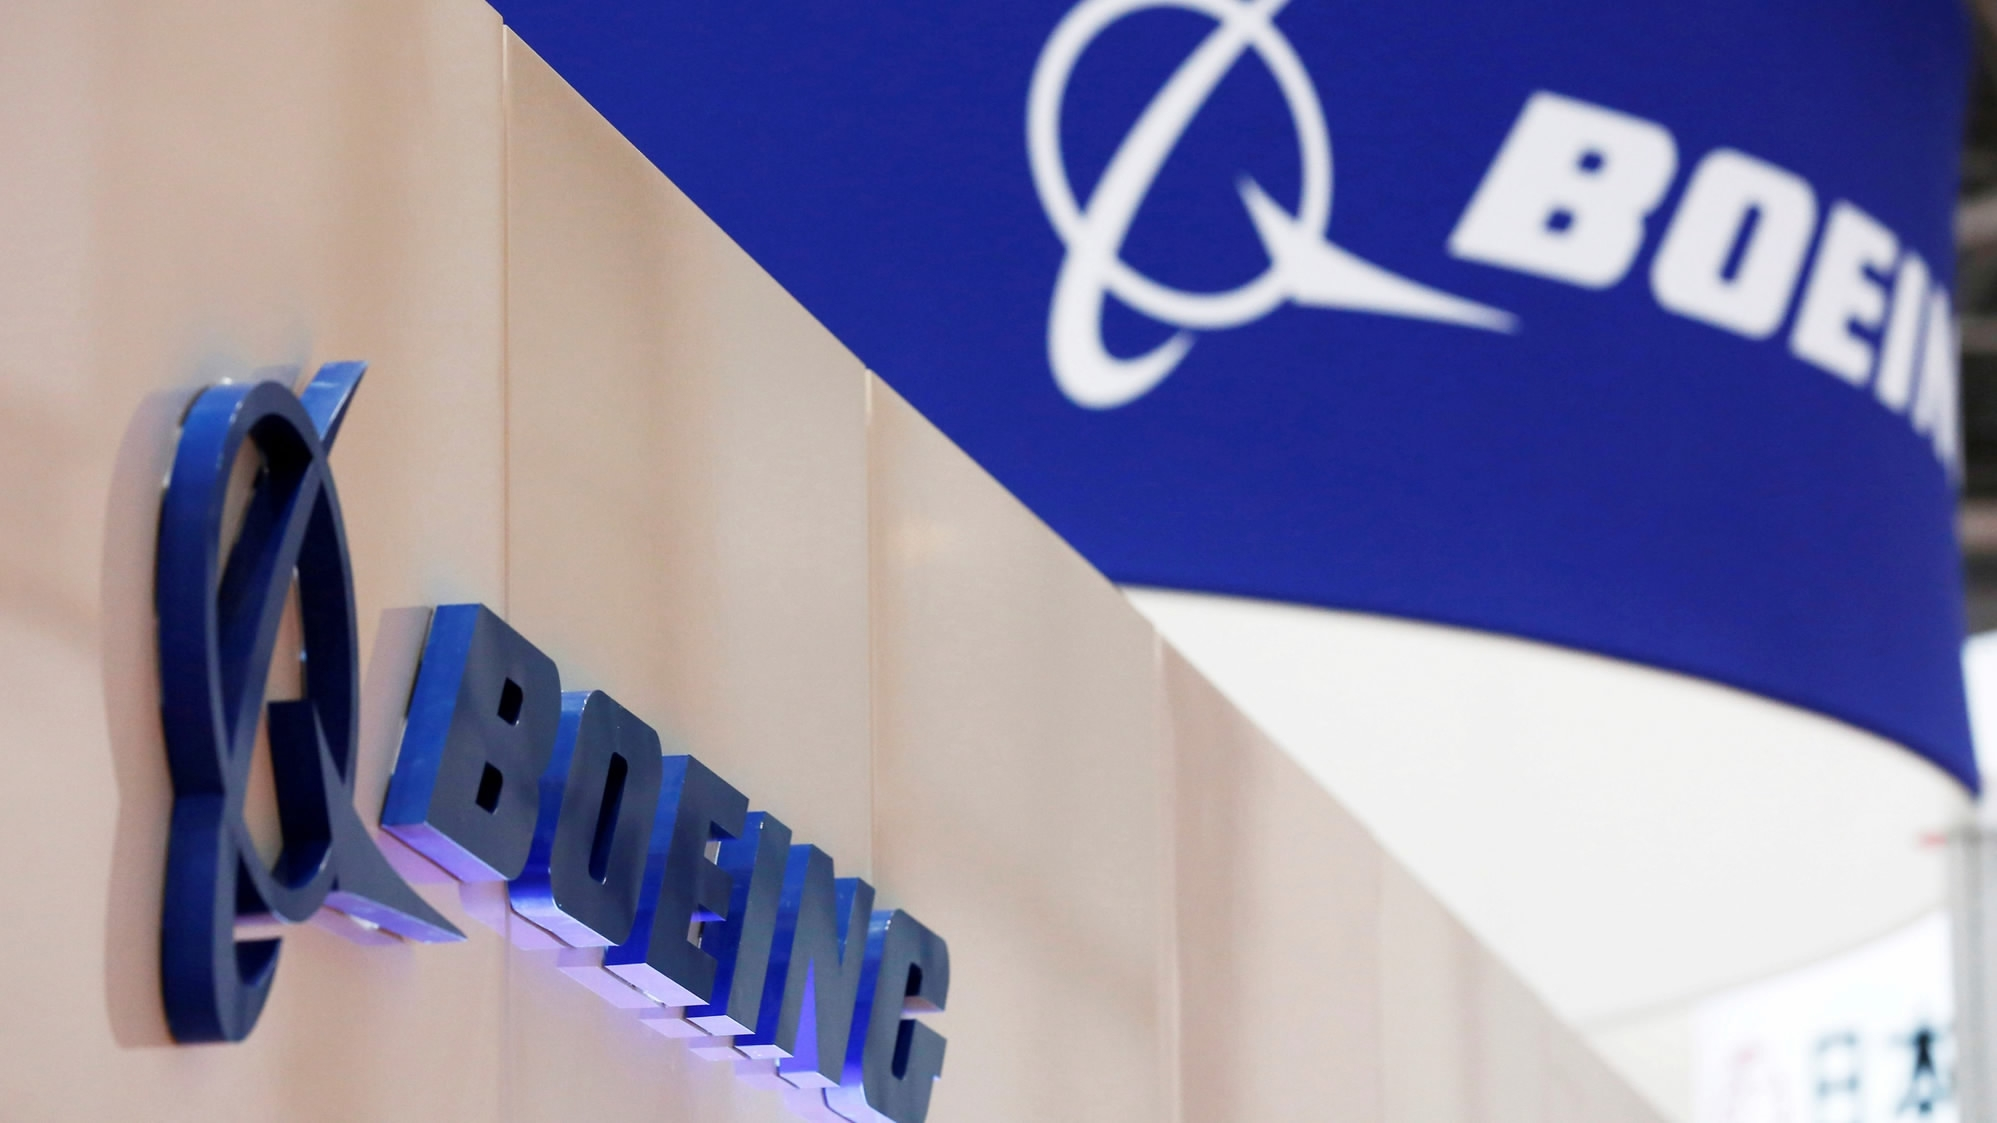 Boeing reports $3.5 bn 3Q loss, will cut 7,000 more jobs